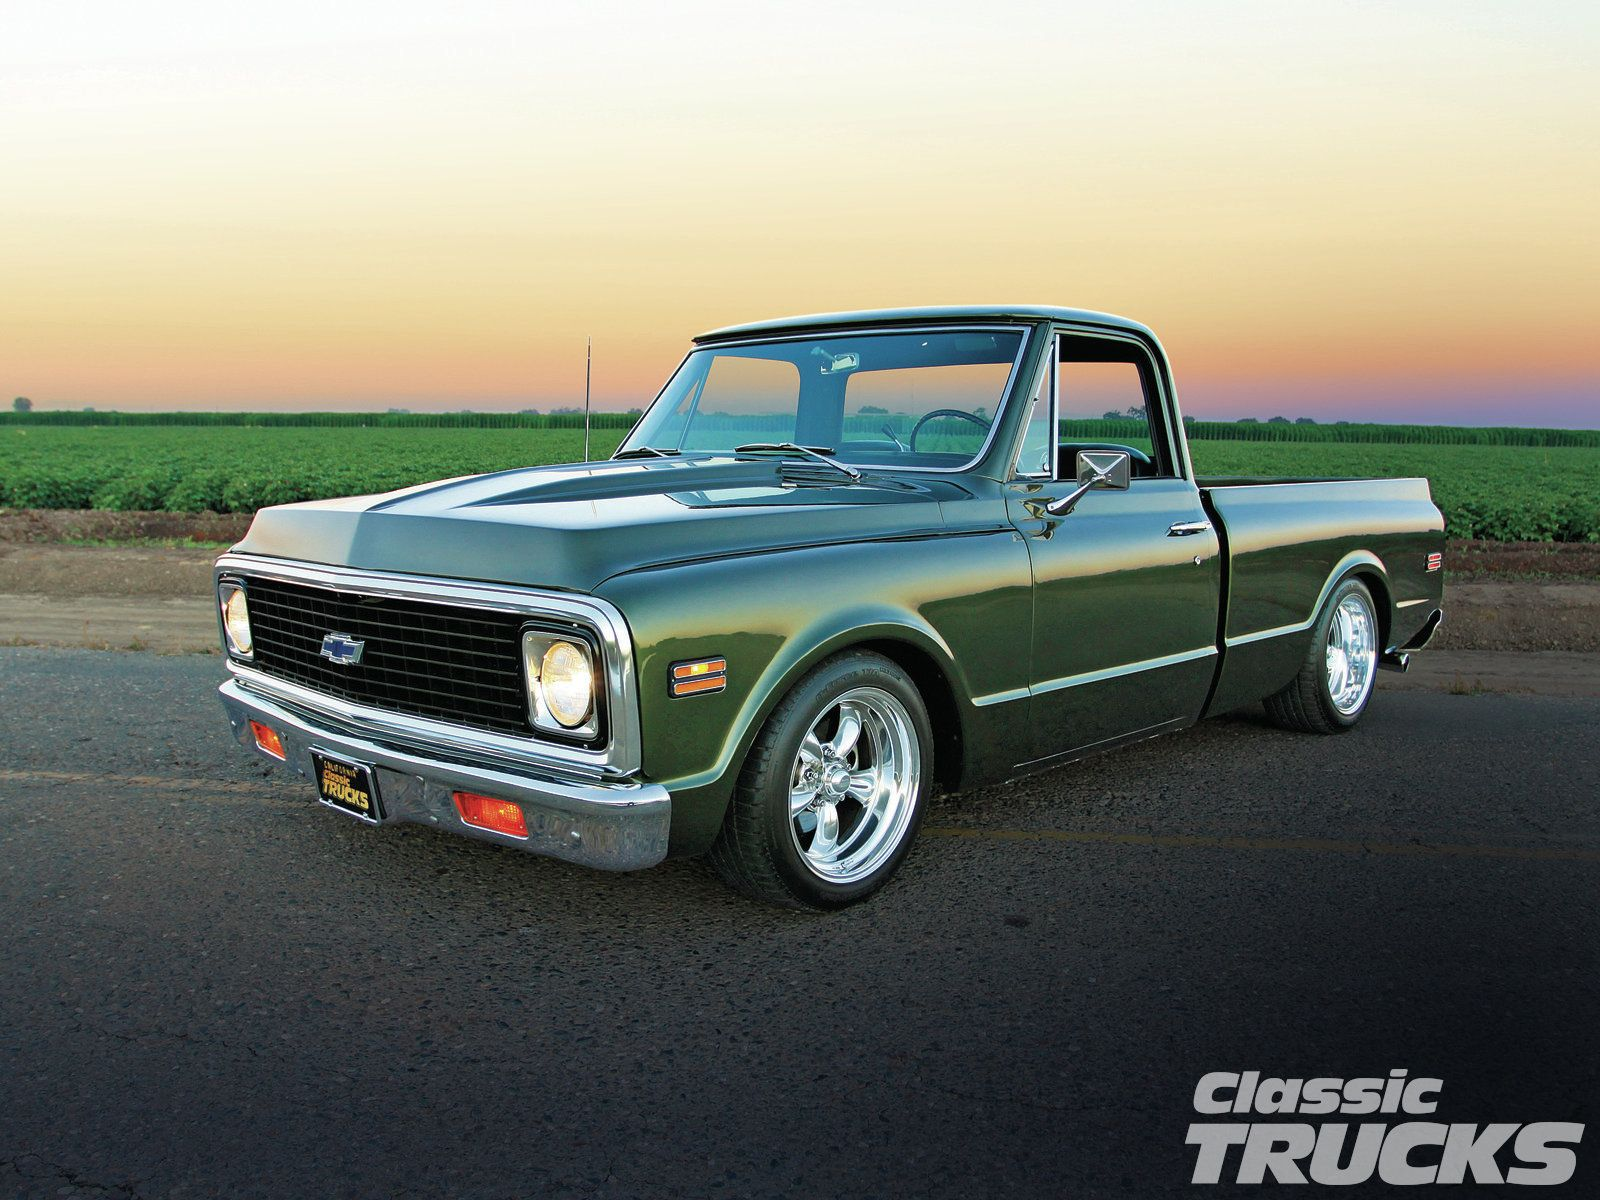 1972 Chevrolet C10 Looks like my 1st vehicle!! Classic